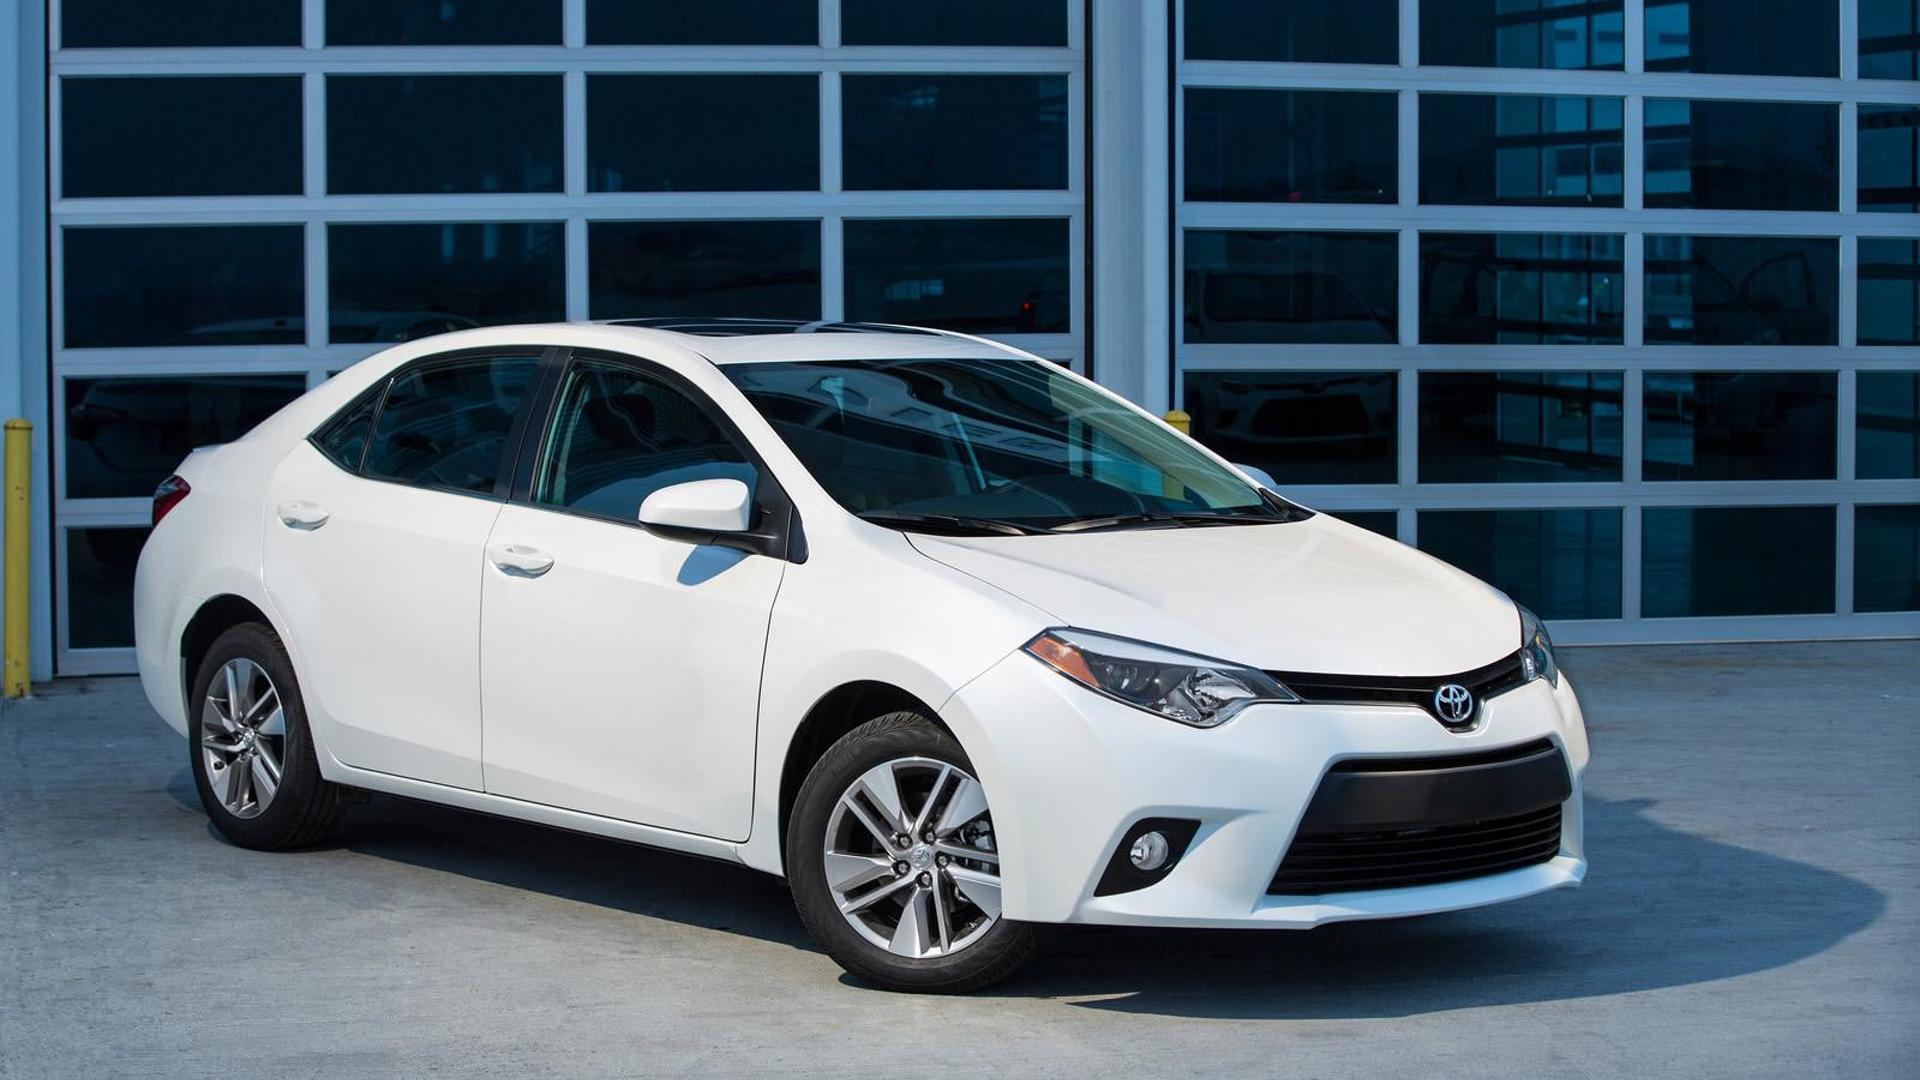 2014 Toyota Corolla priced from 16,800 USD